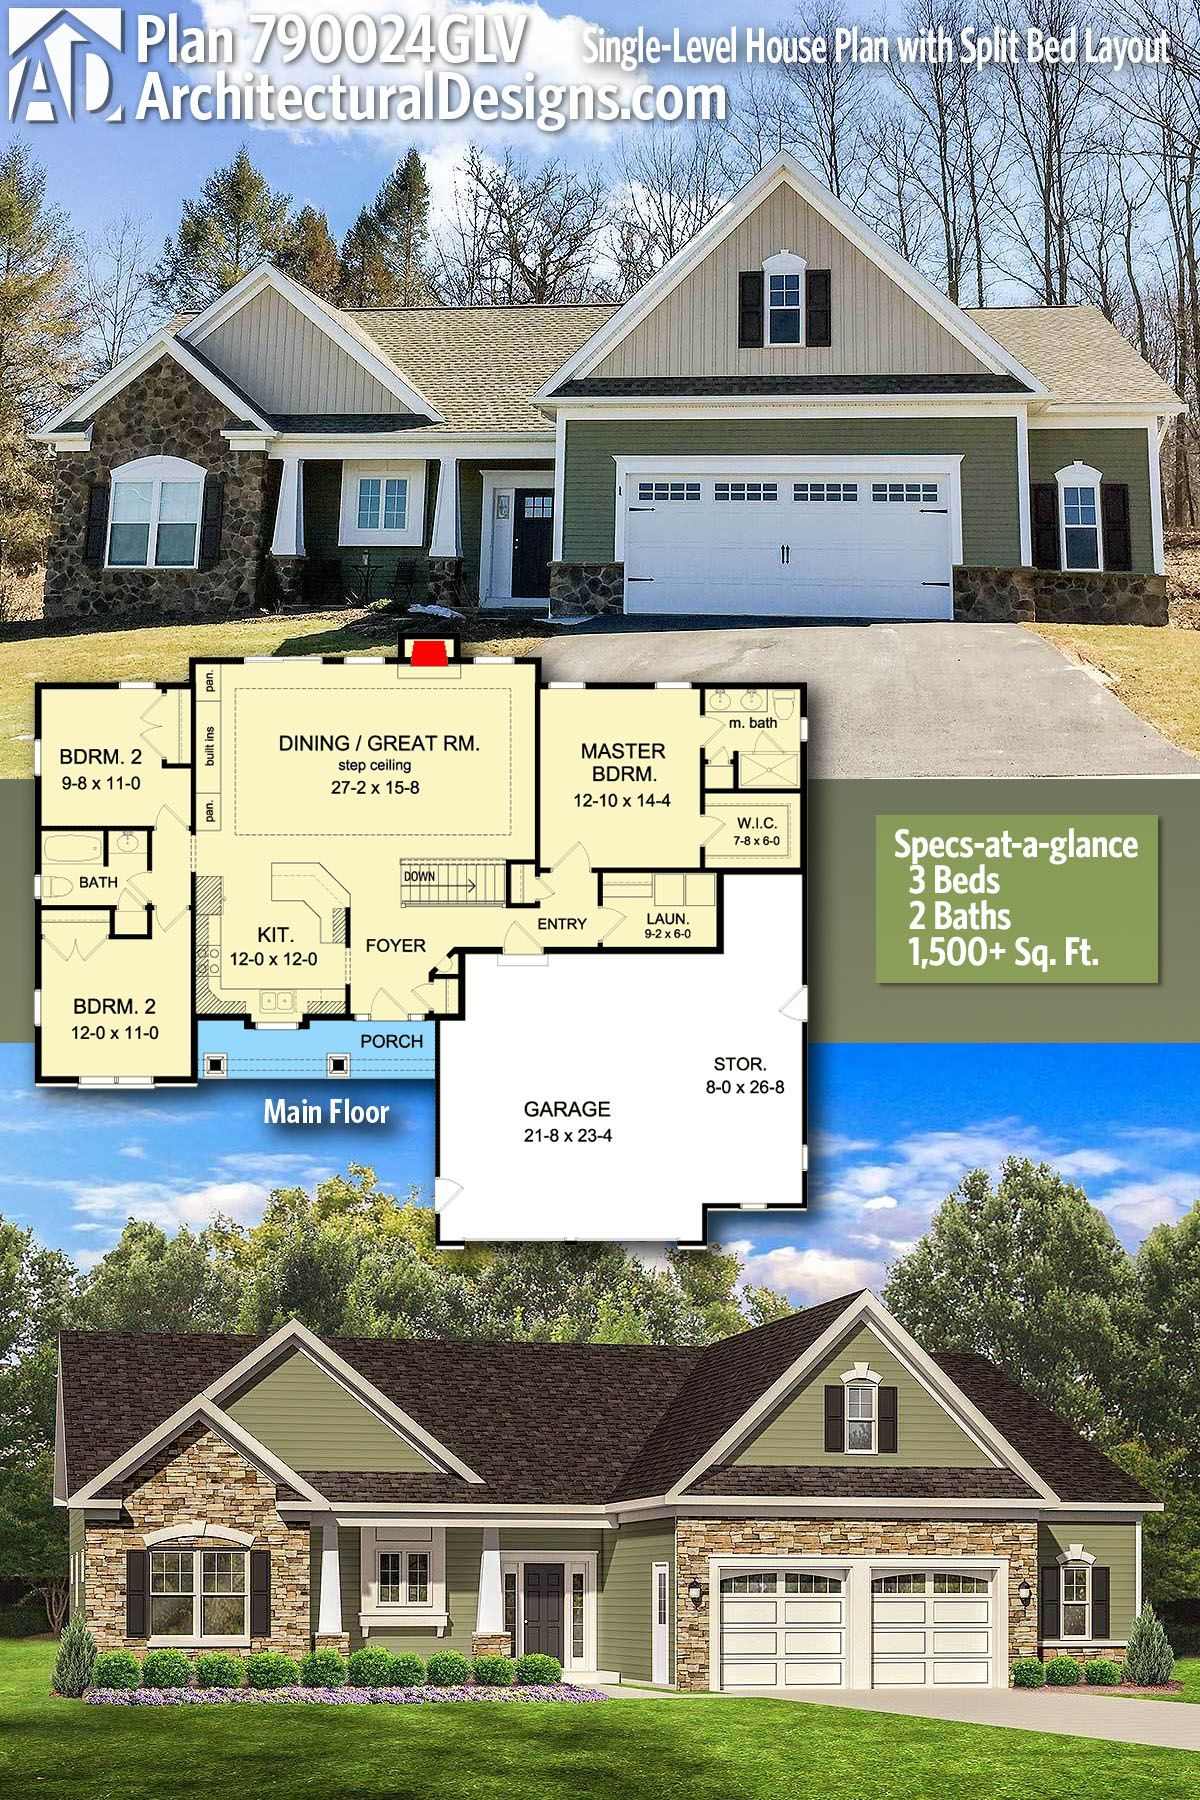 Architectural designs craftsman house plan glv gives you beds baths and over sq ft of single level heated living space also rh pinterest